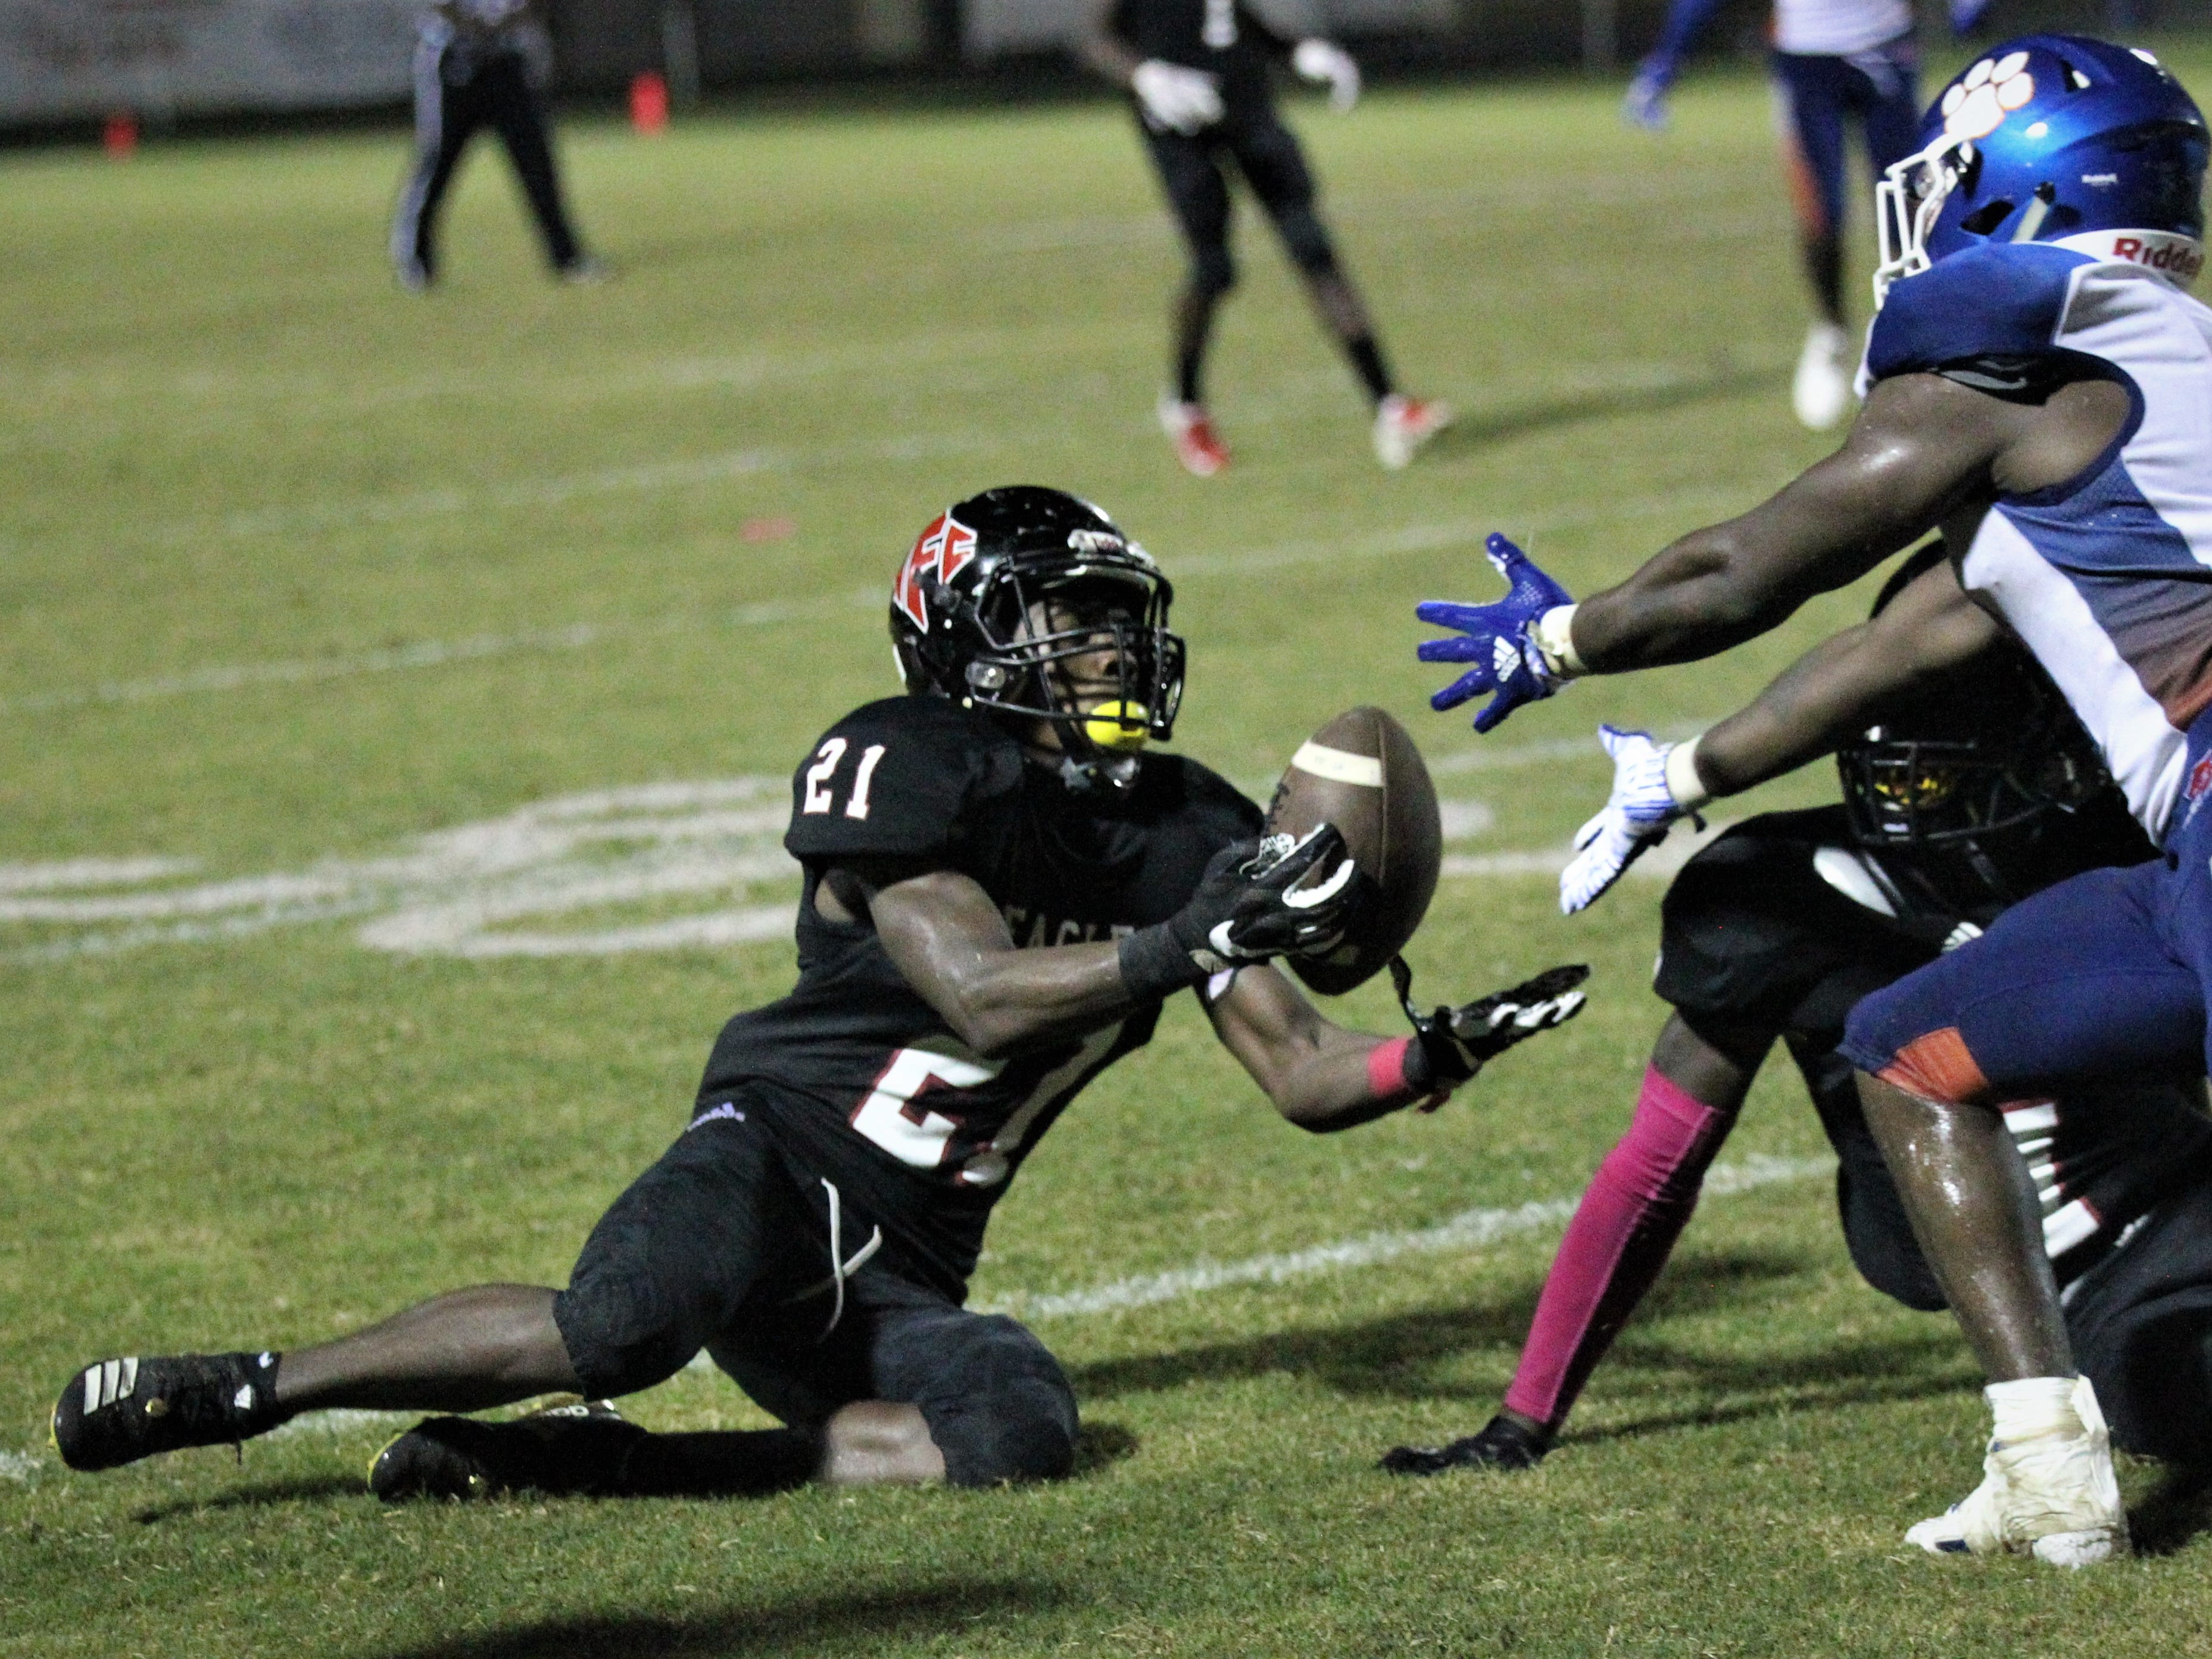 NFC defensive back Von Hayes comes up with an interception off a tipped ball during the Eagles' win over Jefferson County on Friday night.